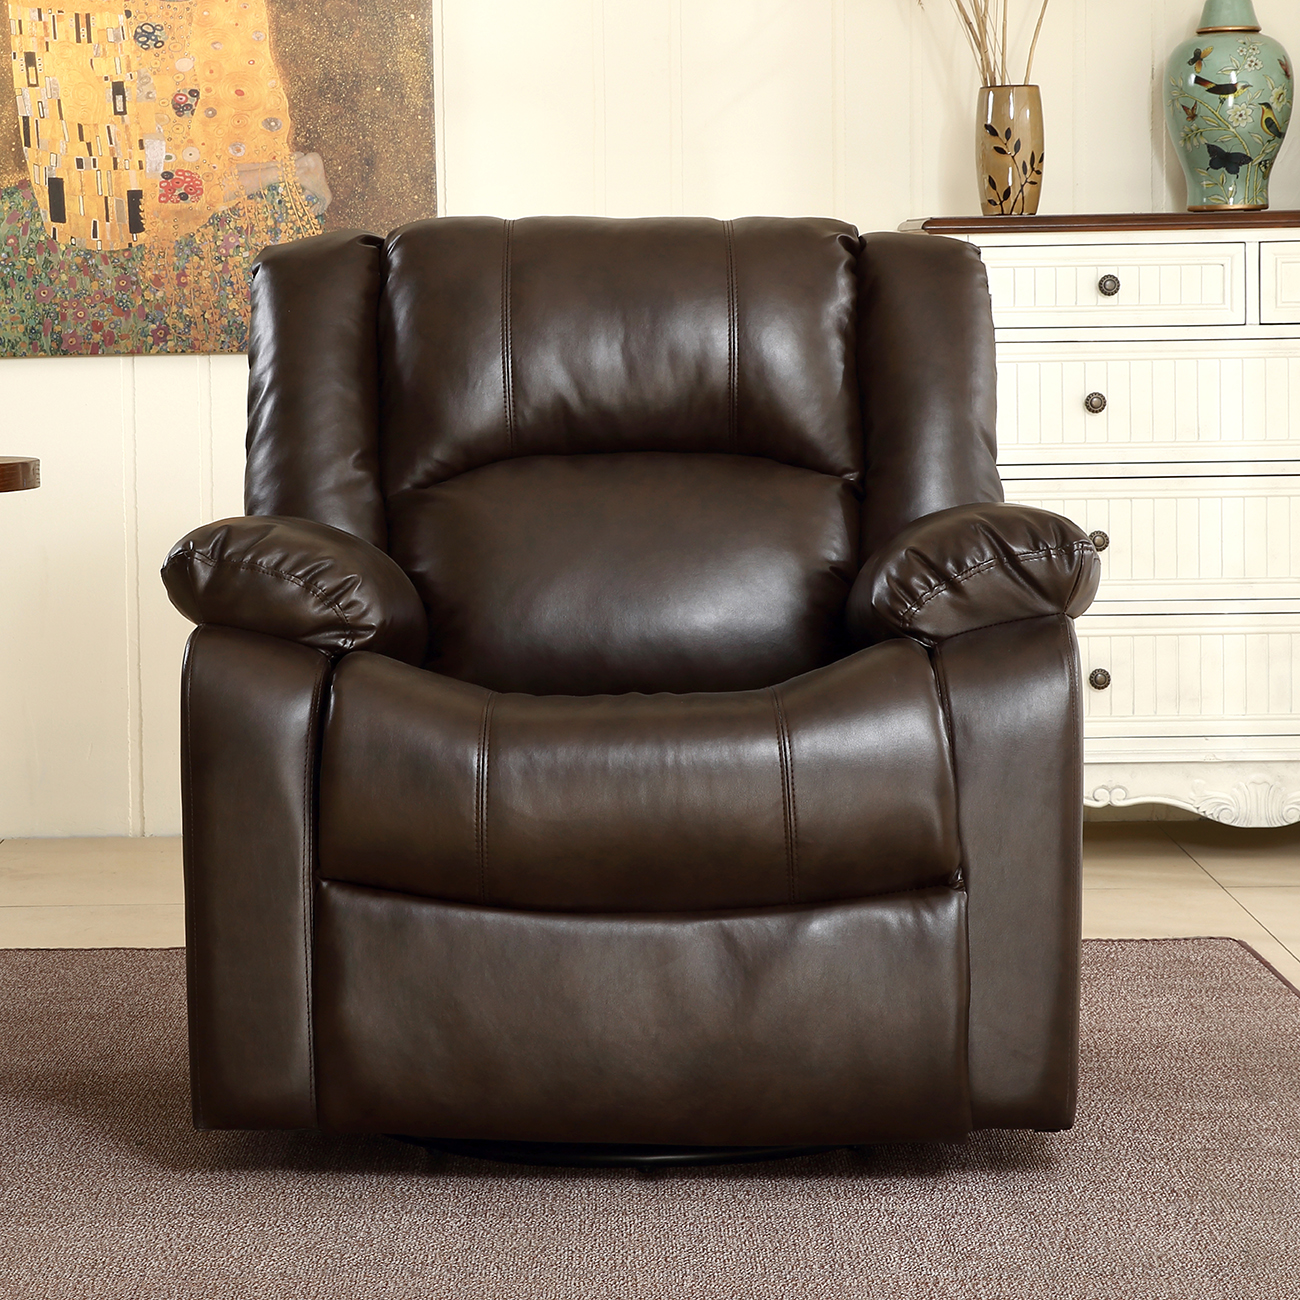 Swivel Recliner Chairs For Living Room New Recliner And Rocking Swivel Chair Leather Seat Living